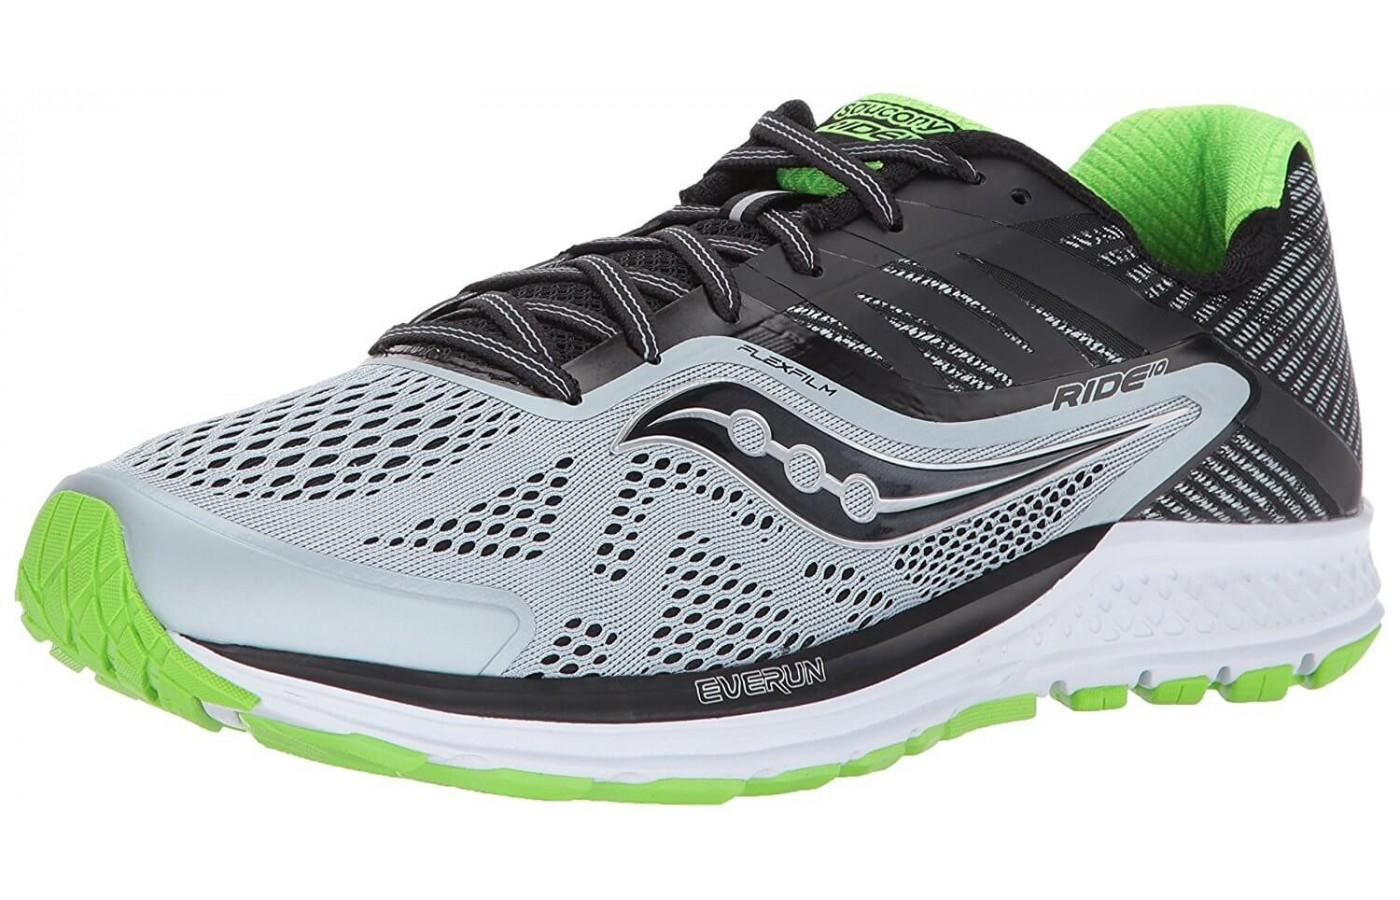 Saucony Ride 10 Reviewed To Buy or Not in Oct 2019?